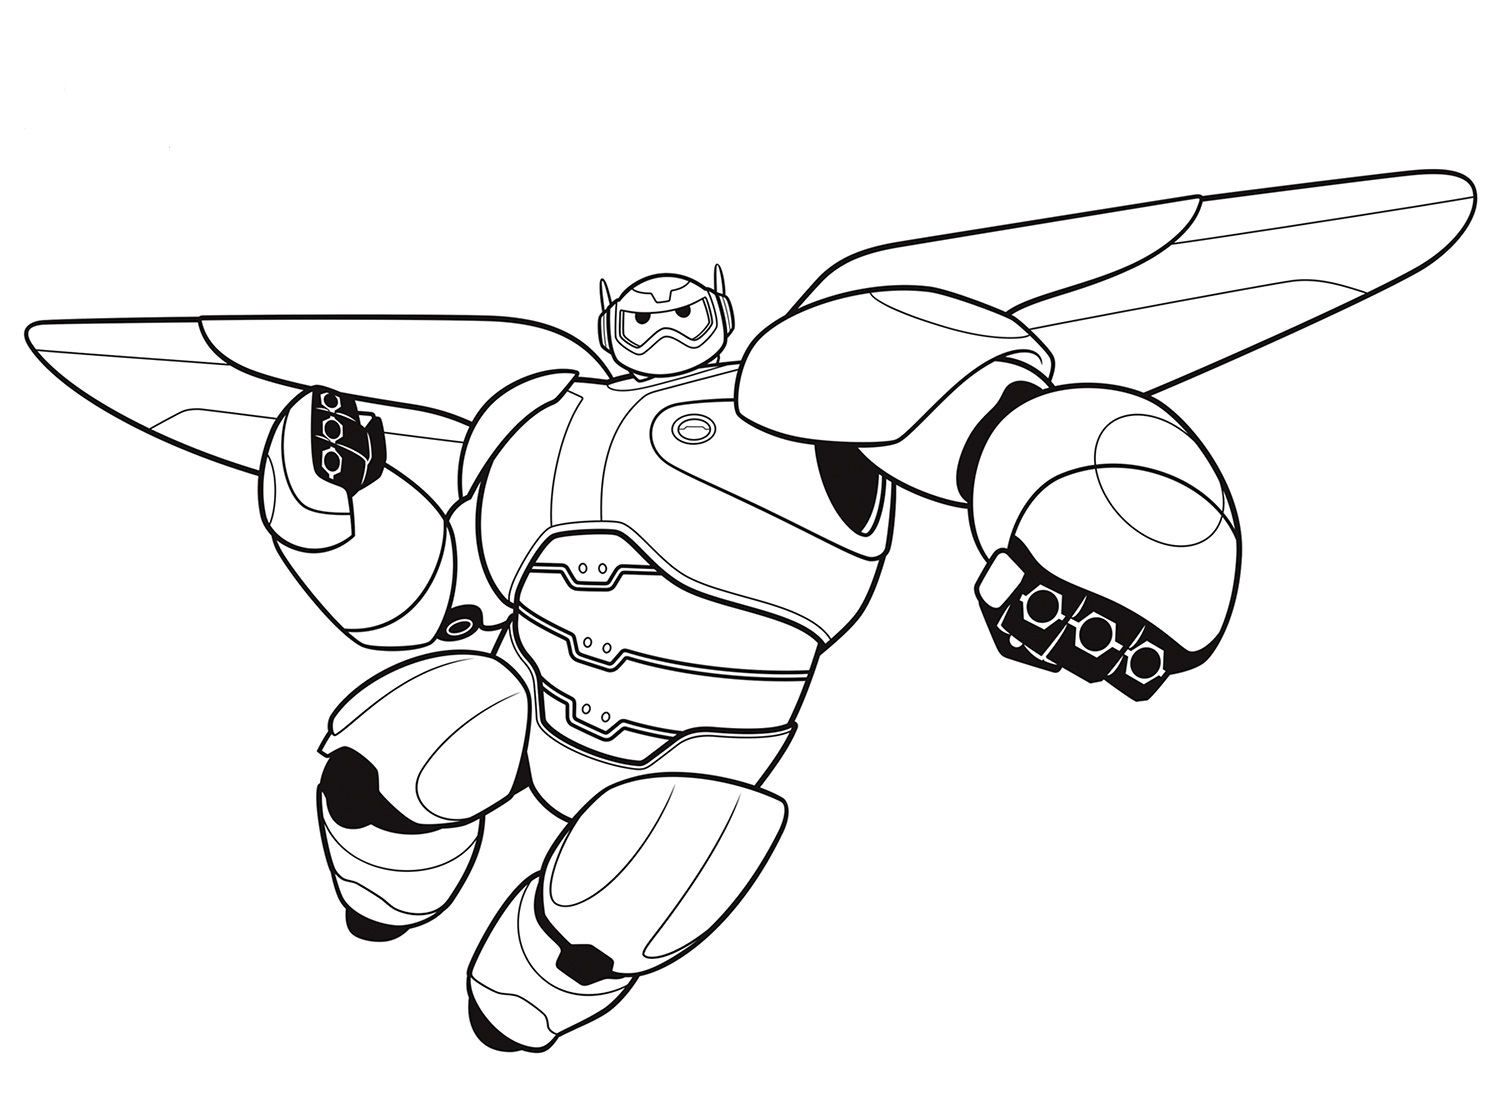 Big hero 6 coloring pages to download and print for free